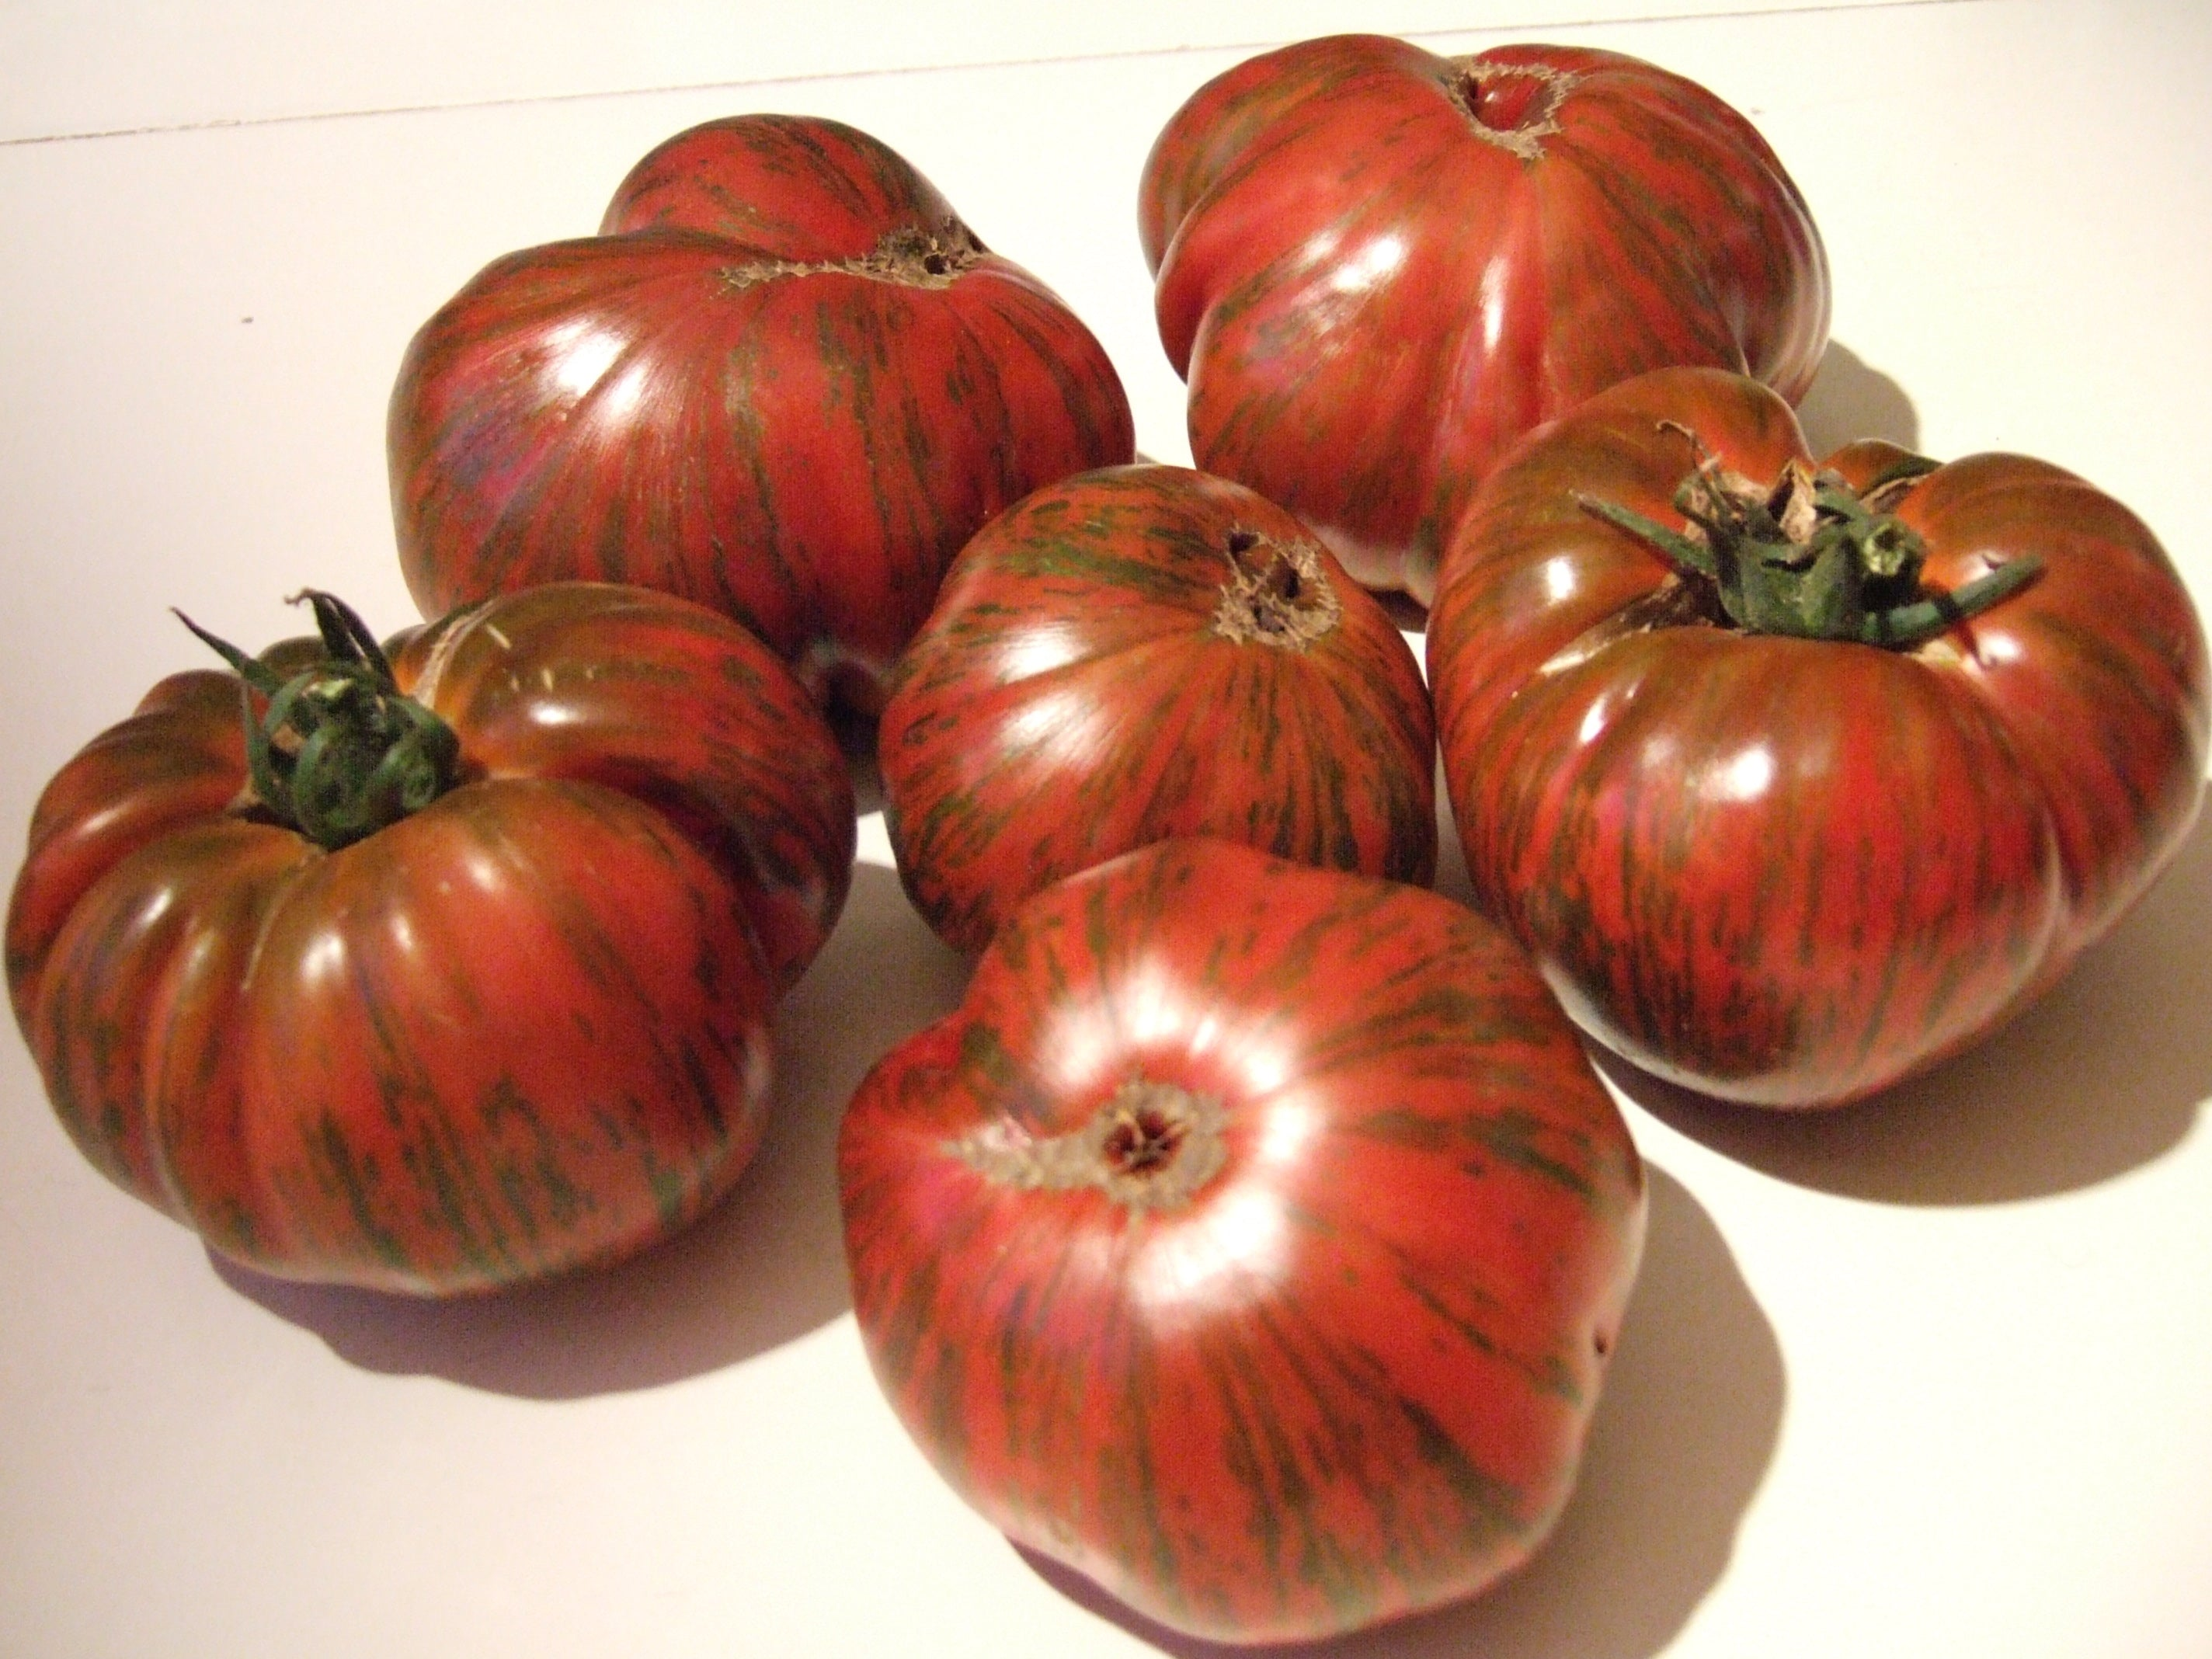 Chocolate Striped-Tomatoes-Vegetables-Full Circle Seeds